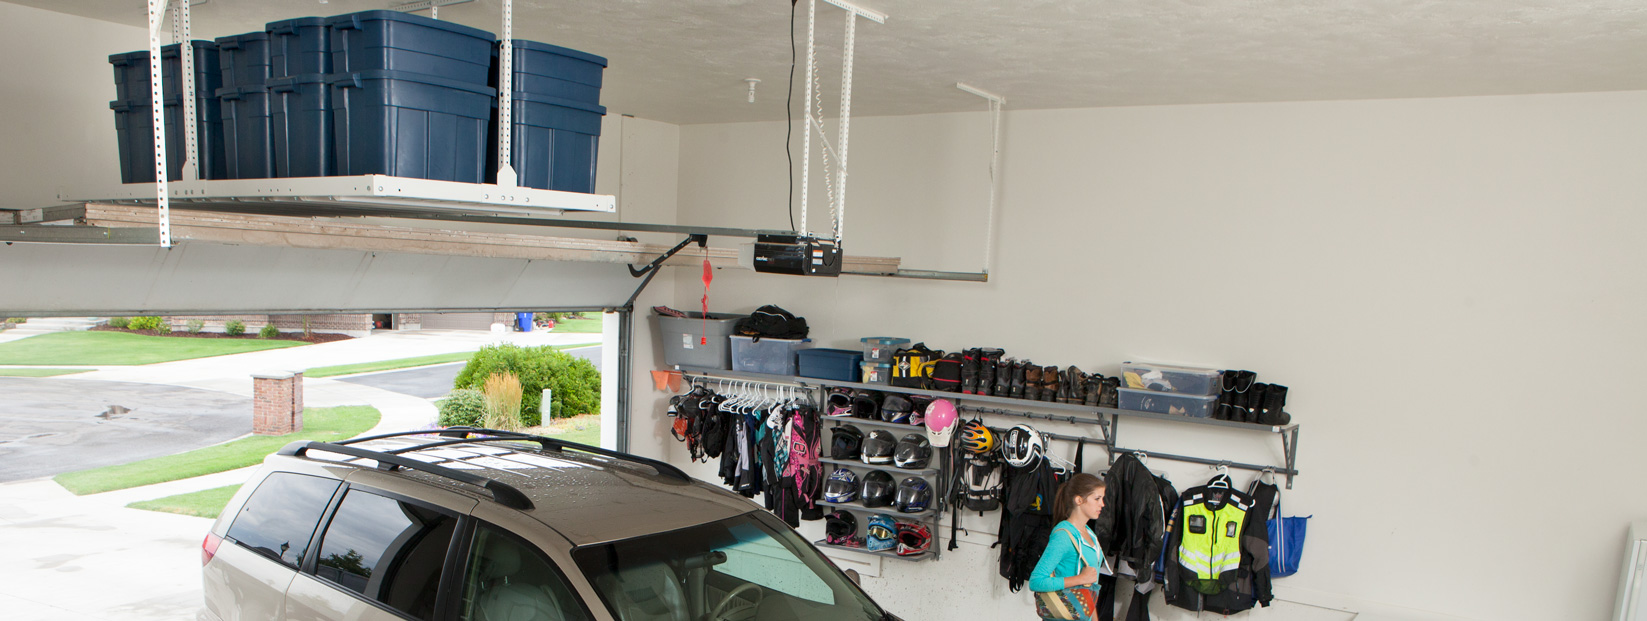 Garage Overhead Storage Orange County